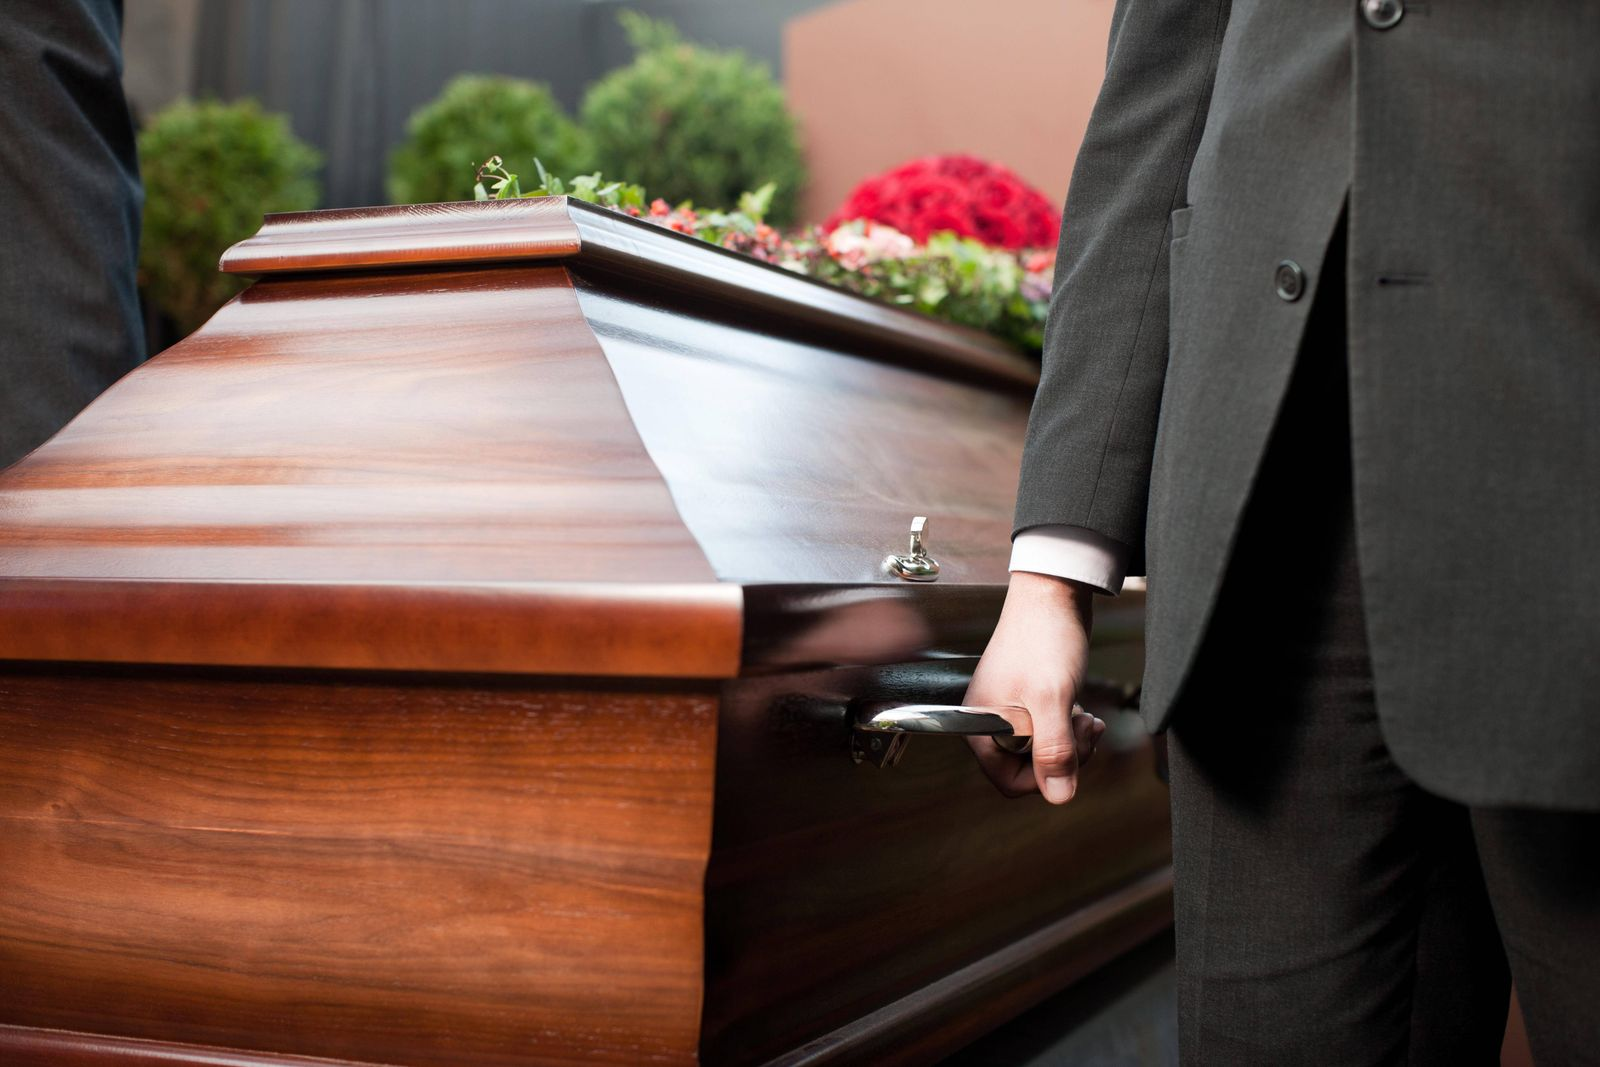 funeral with coffin model released Symbolfoto property released PUBLICATIONxINxGERxSUIxAUTxONLY Copy